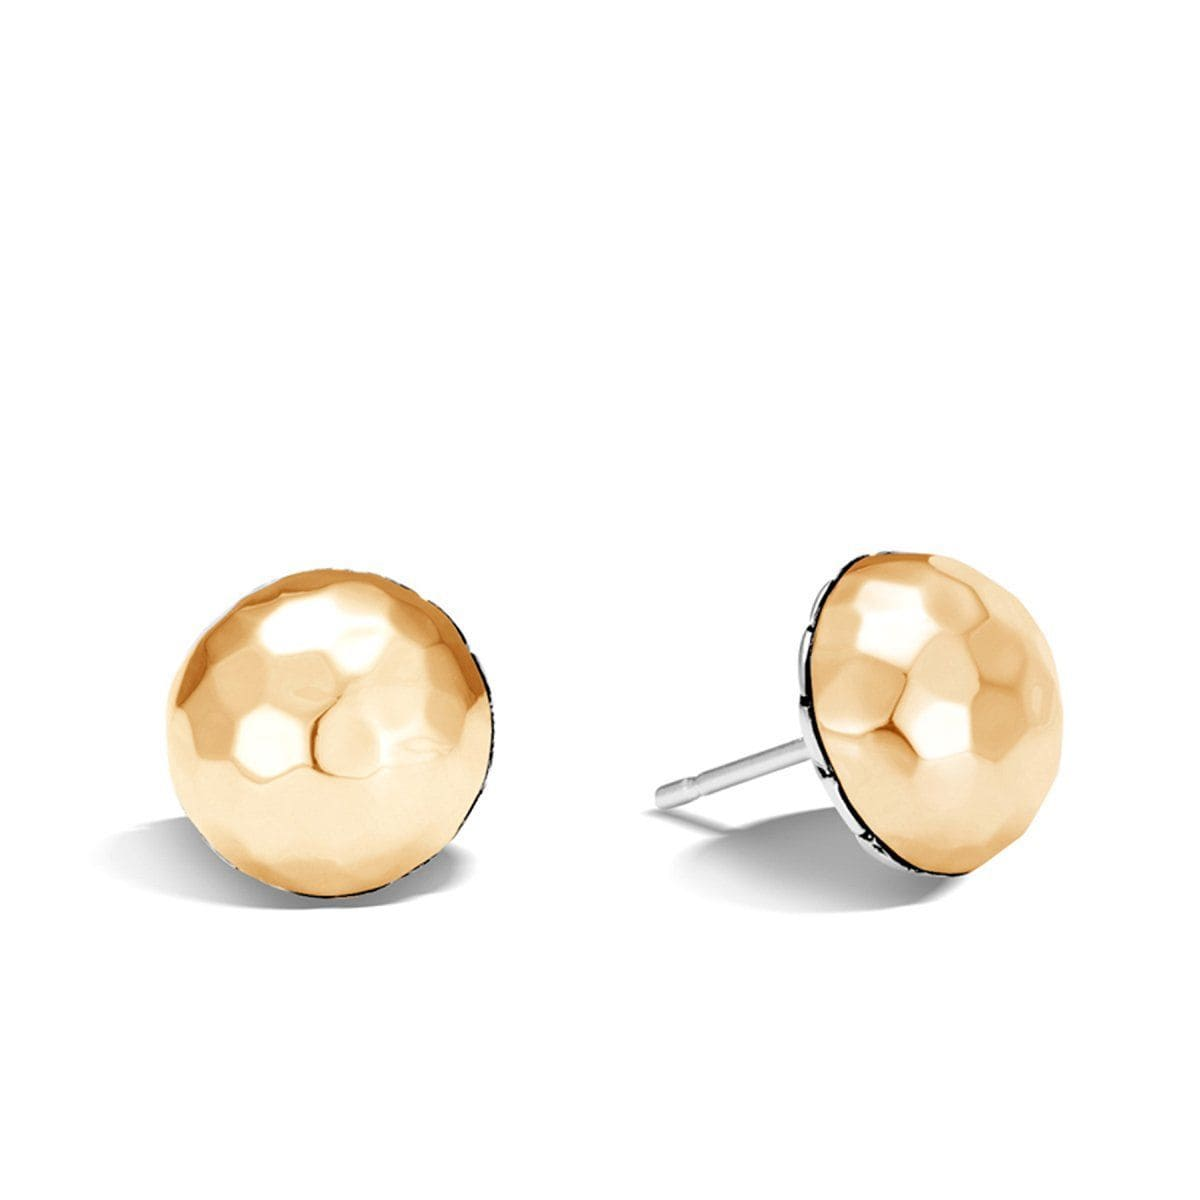 Hammered Gold Large Stud Earrings - EZ999578